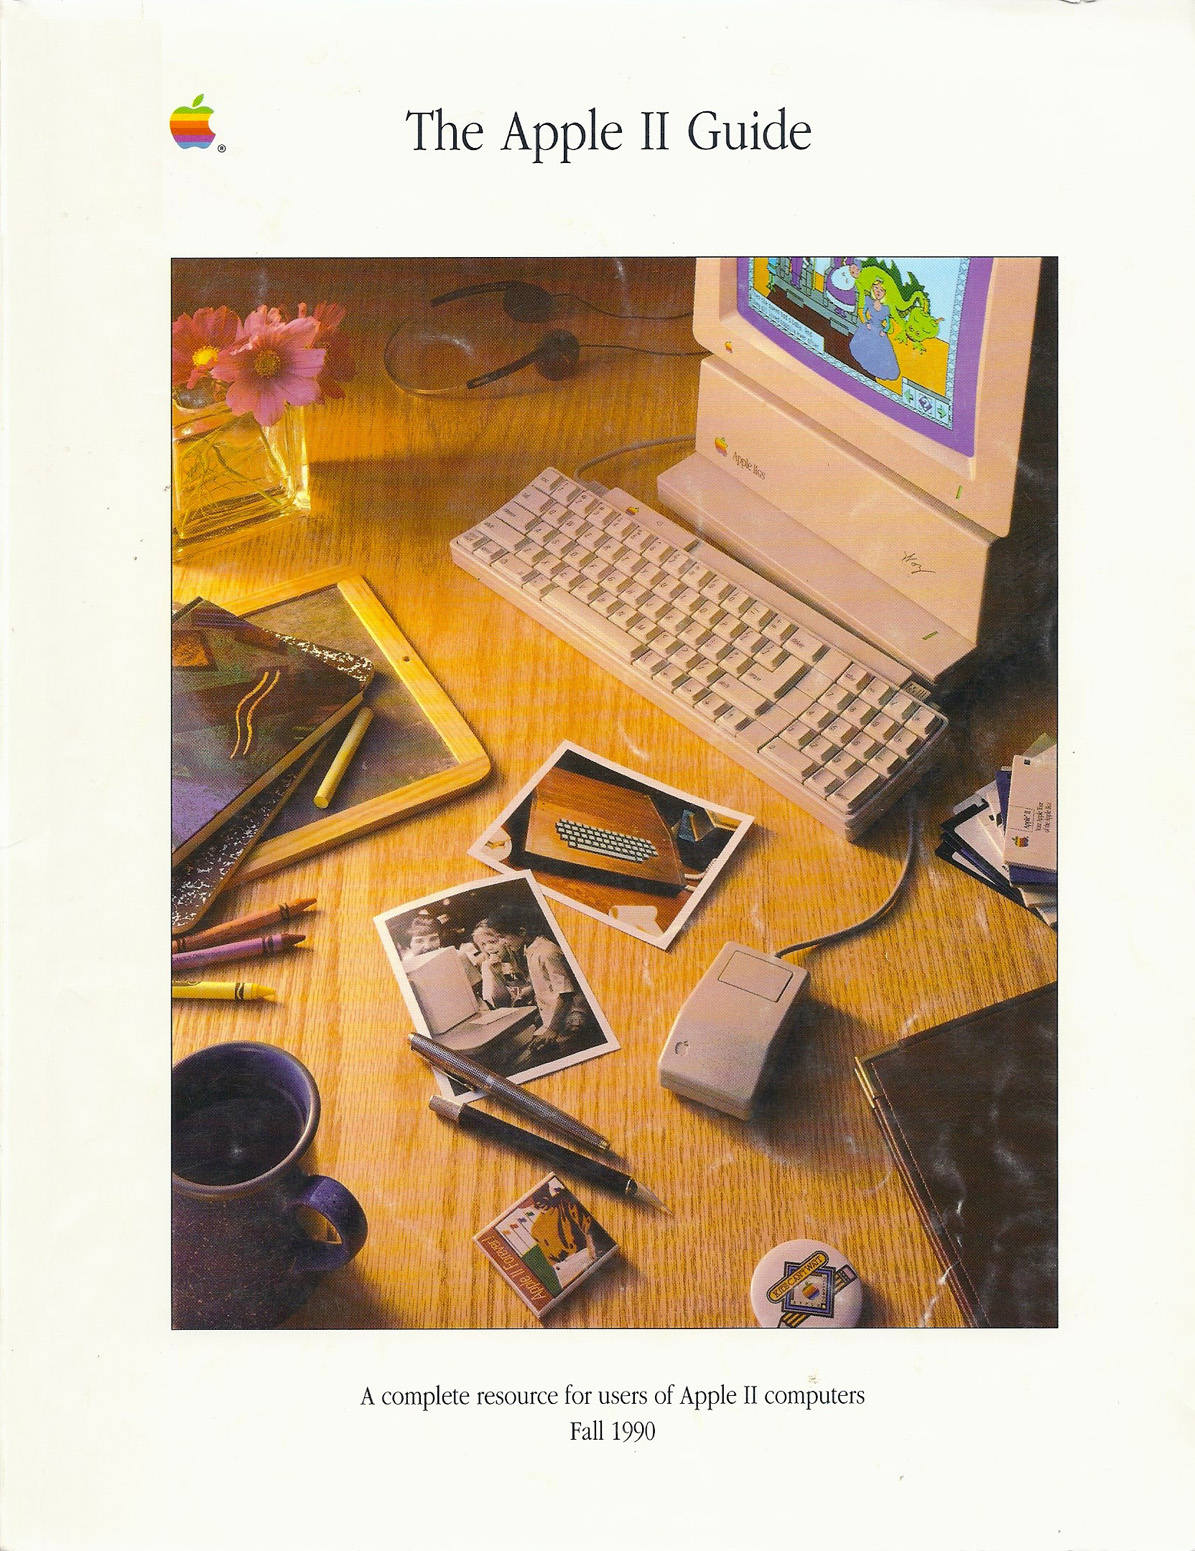 Apple II Guide 1990